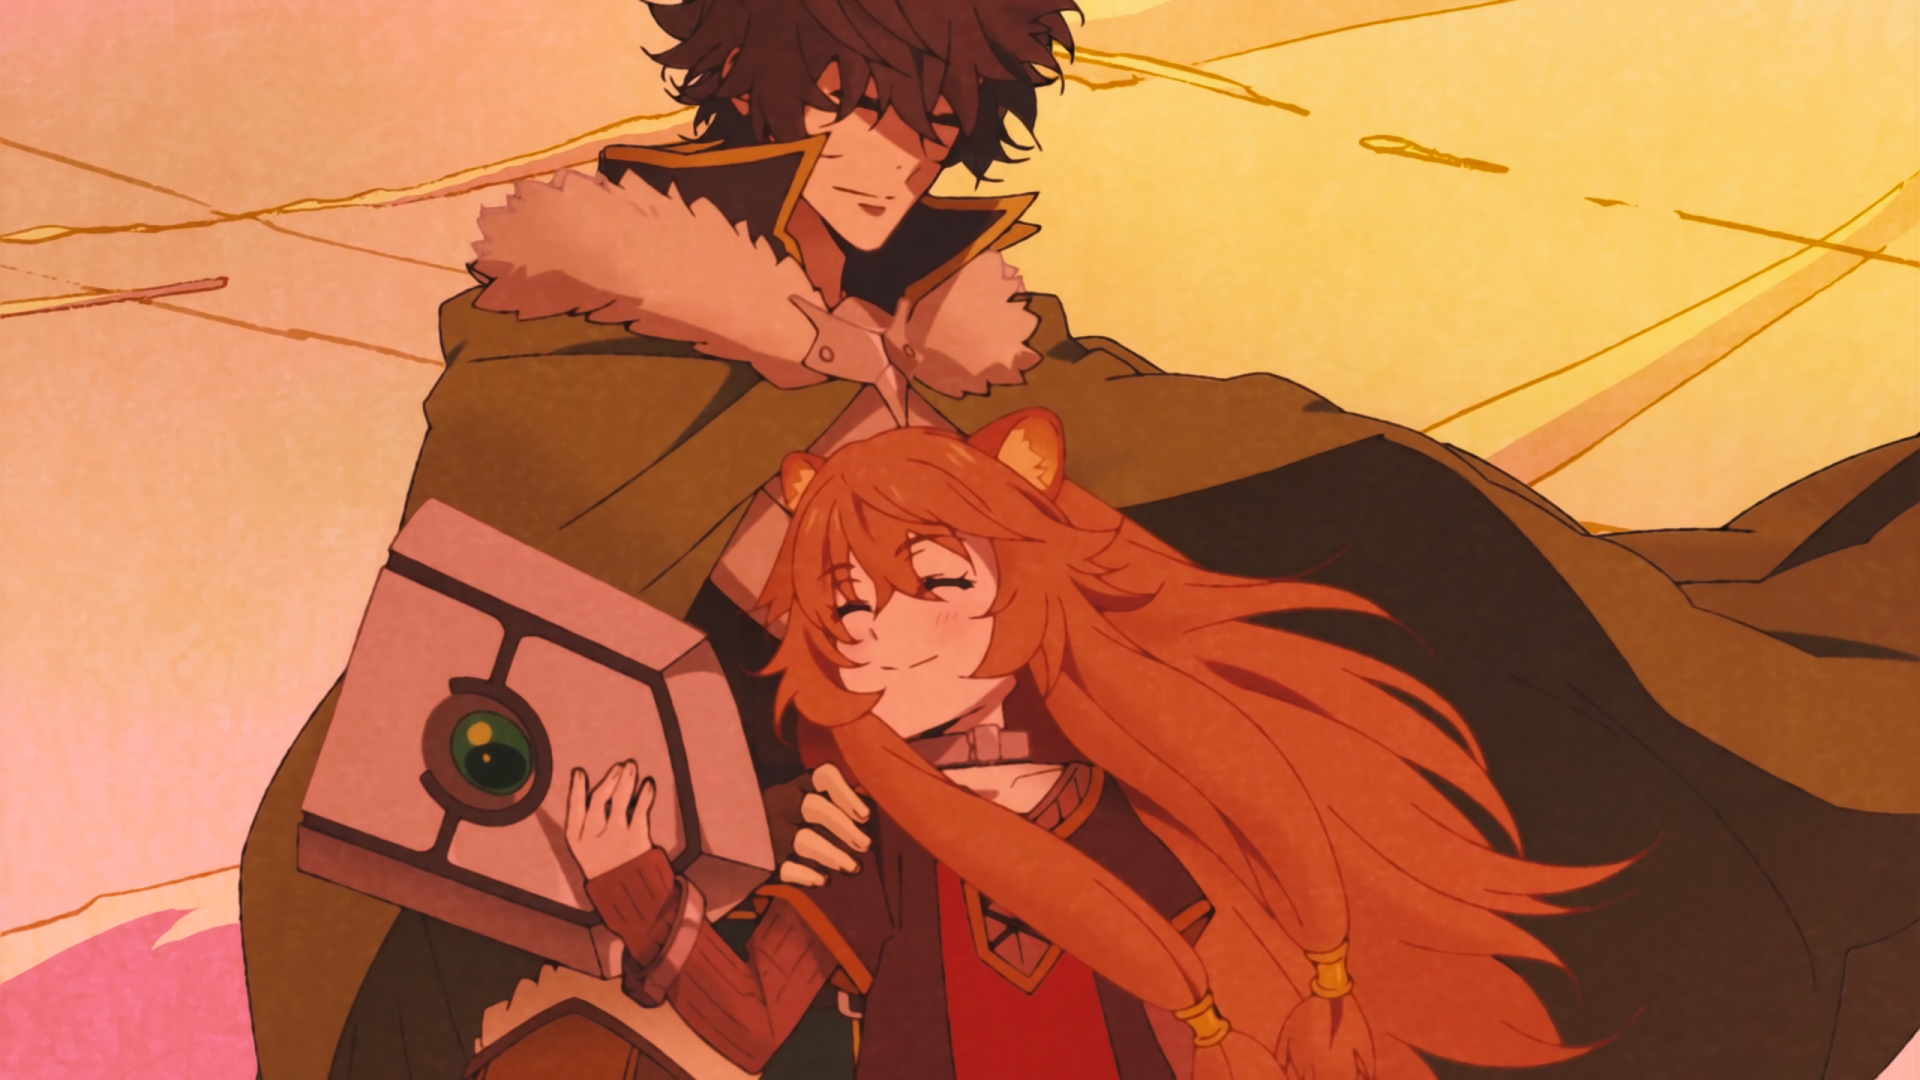 2560x1440 The Rising Of The Shield Hero Wallpaper Background Image View Download Comment And Rate Wallpaper Abyss Hero Wallpaper Anime Songs Anime